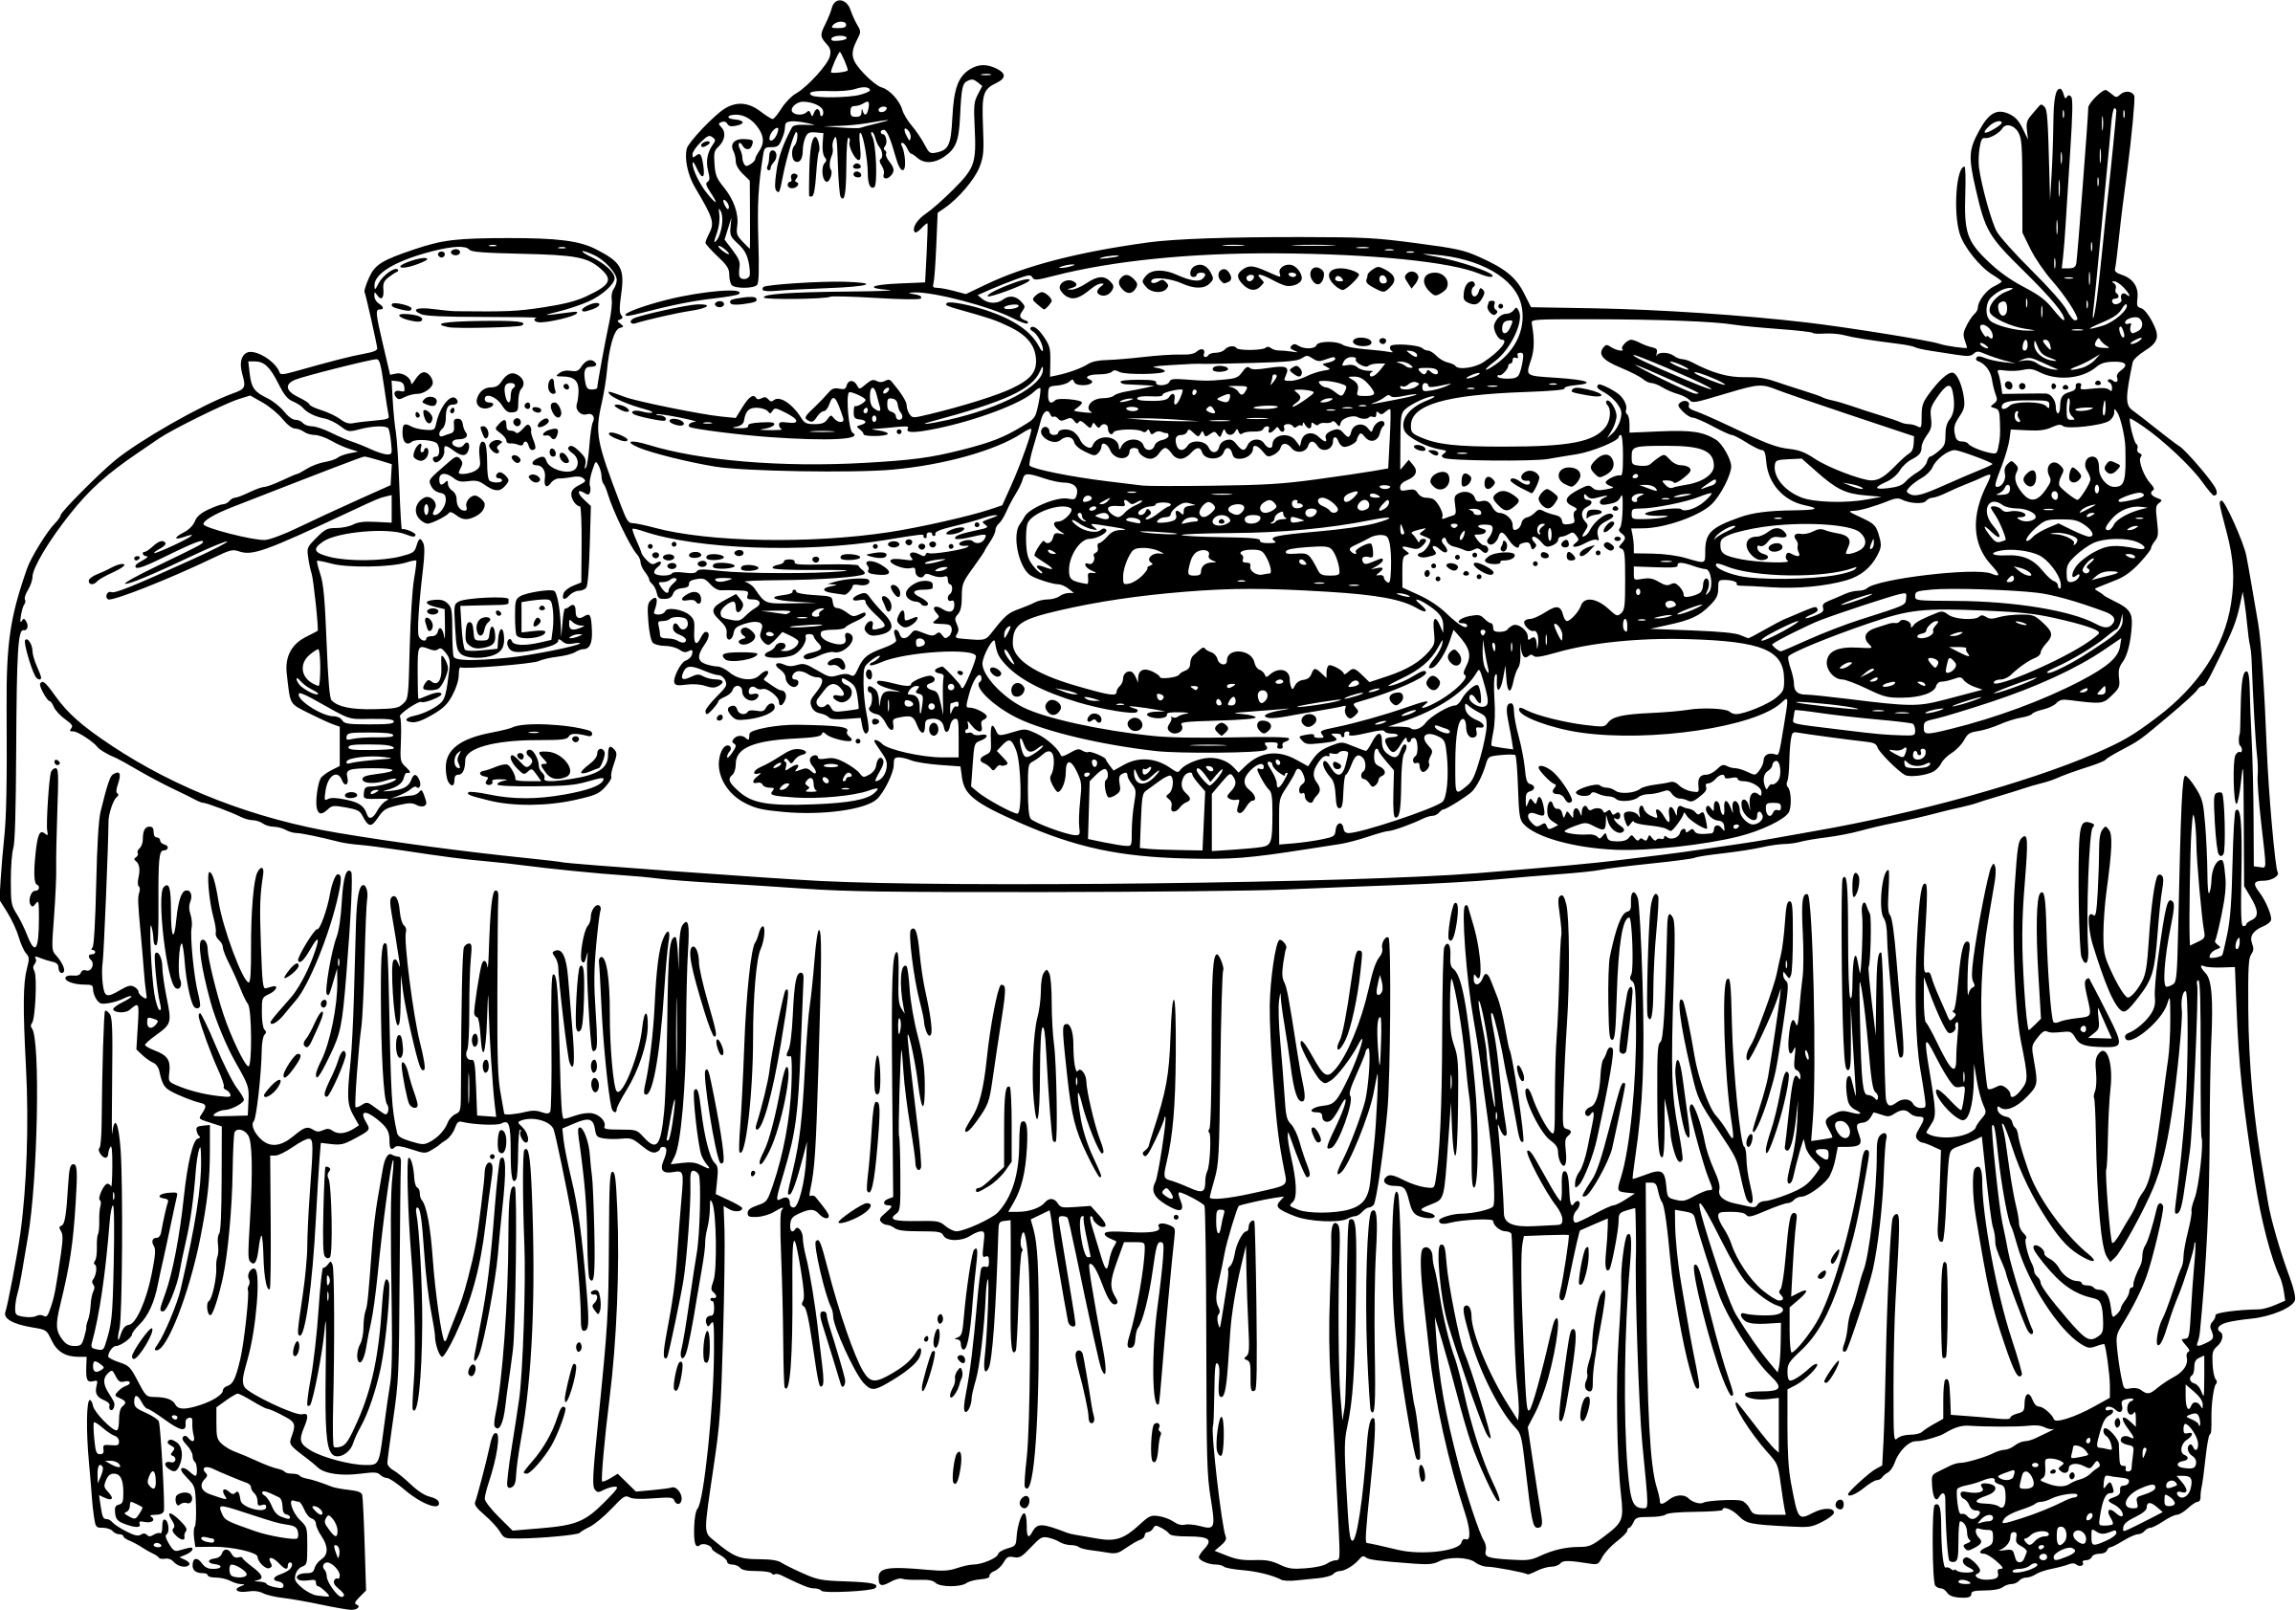 Lunch Clipart Buffet Lunch Buffet Transparent Free For